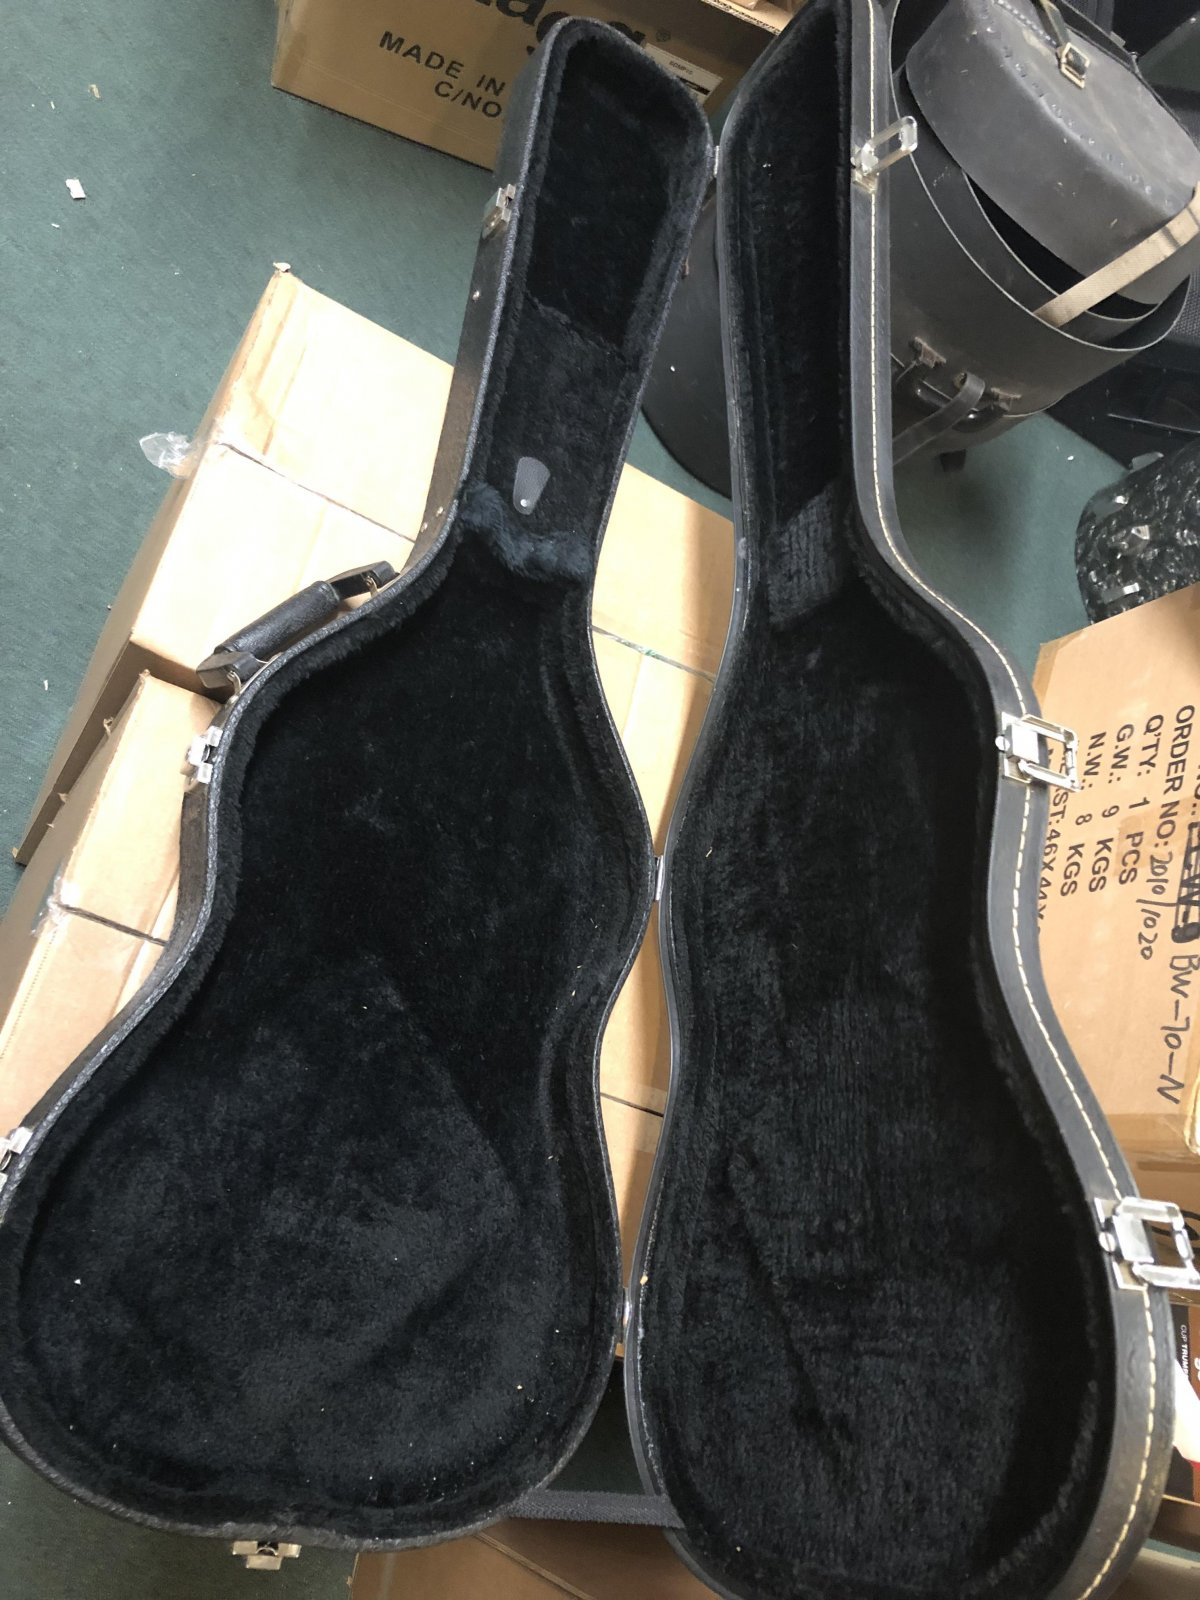 Ibanez Small Electric Guitar Case